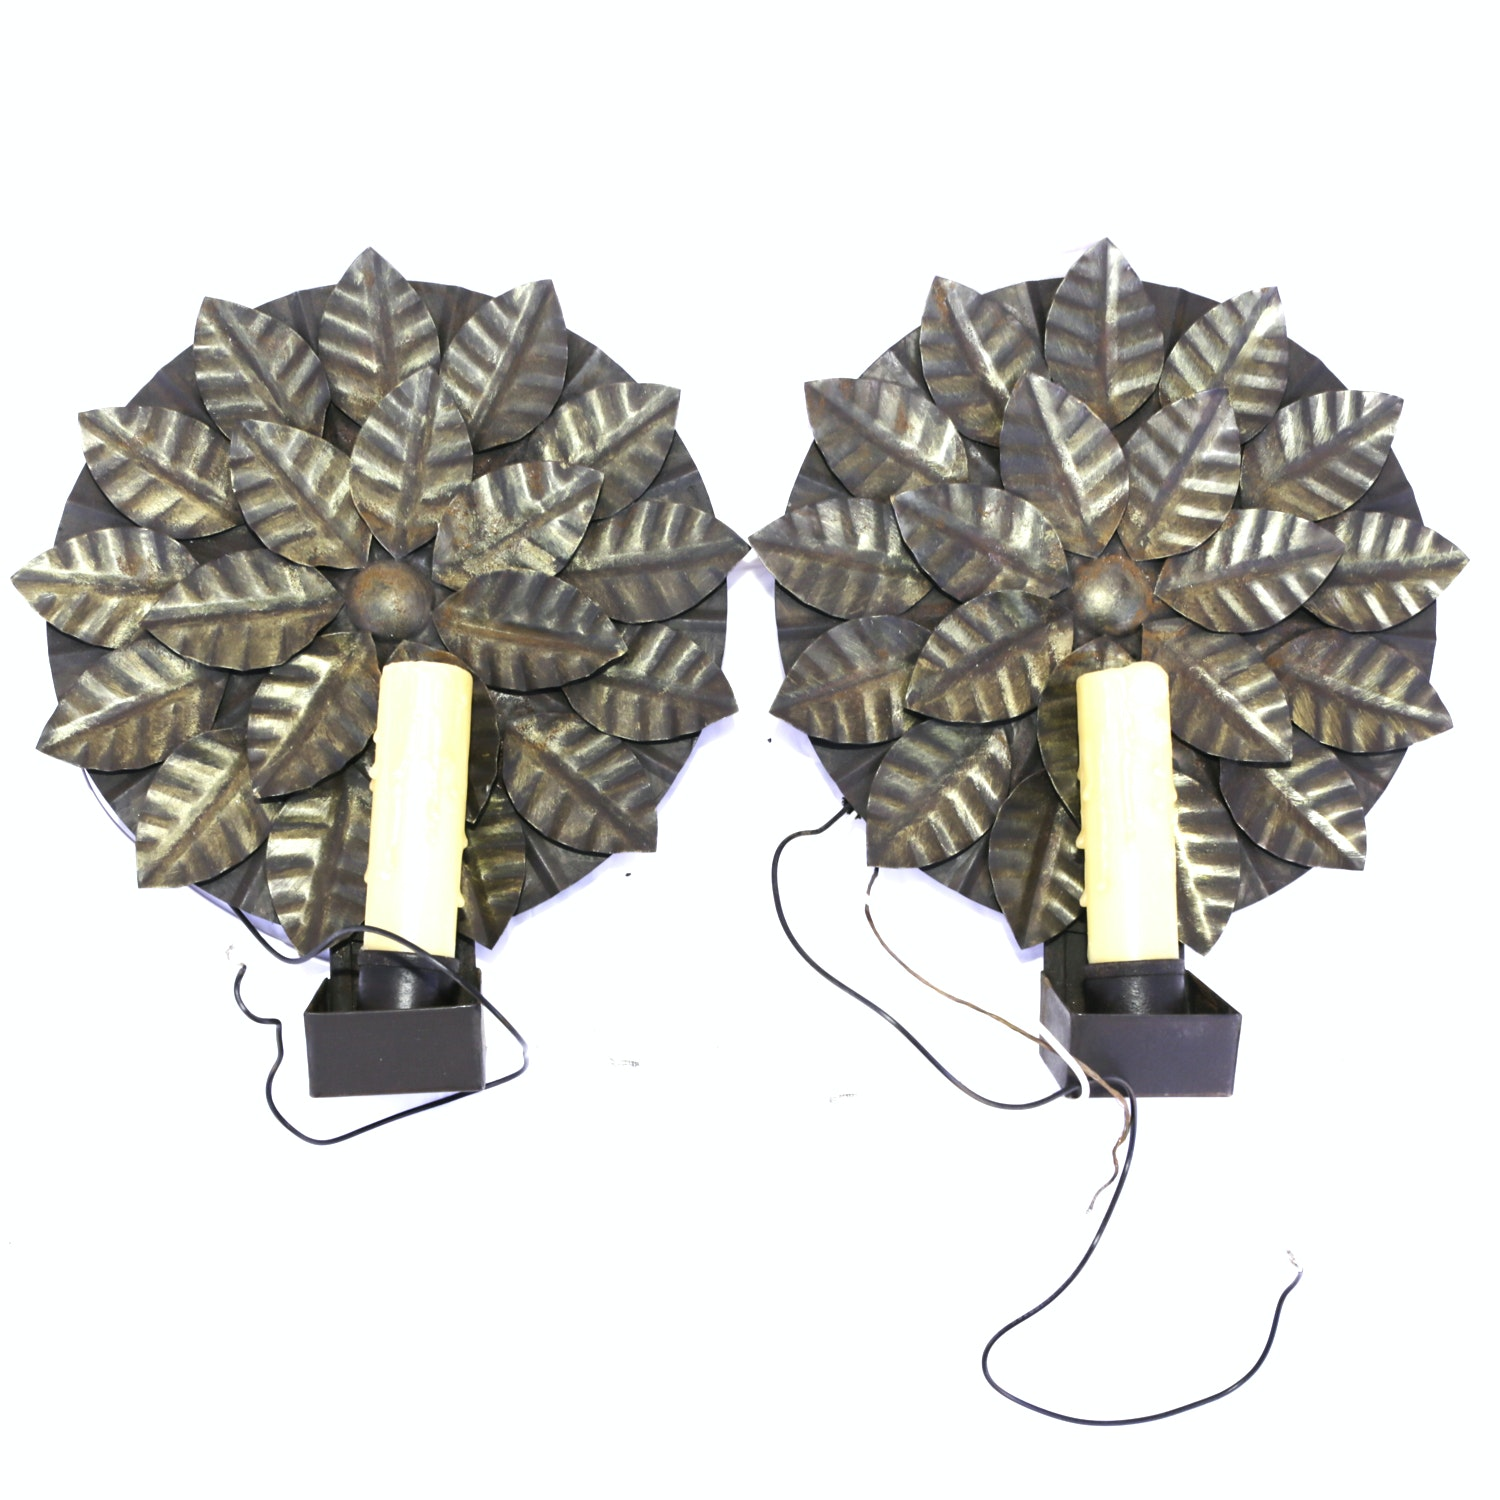 Pair of Wall Sconce Light Fixtures